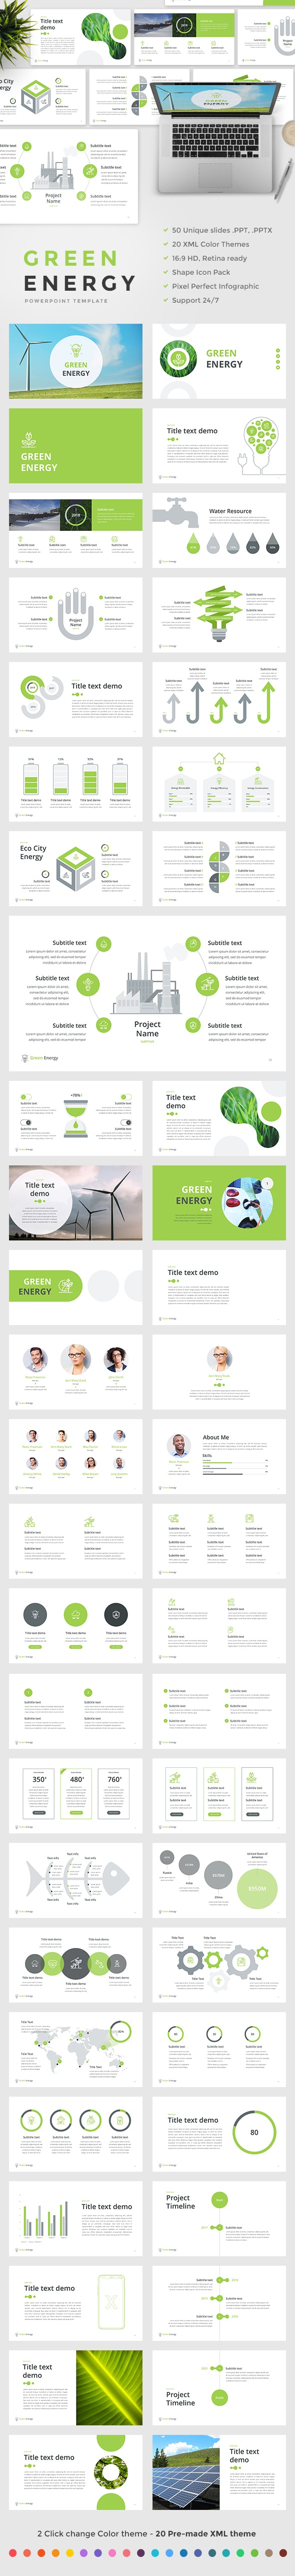 Green Energy - PowerPoint Template - Nature PowerPoint Templates